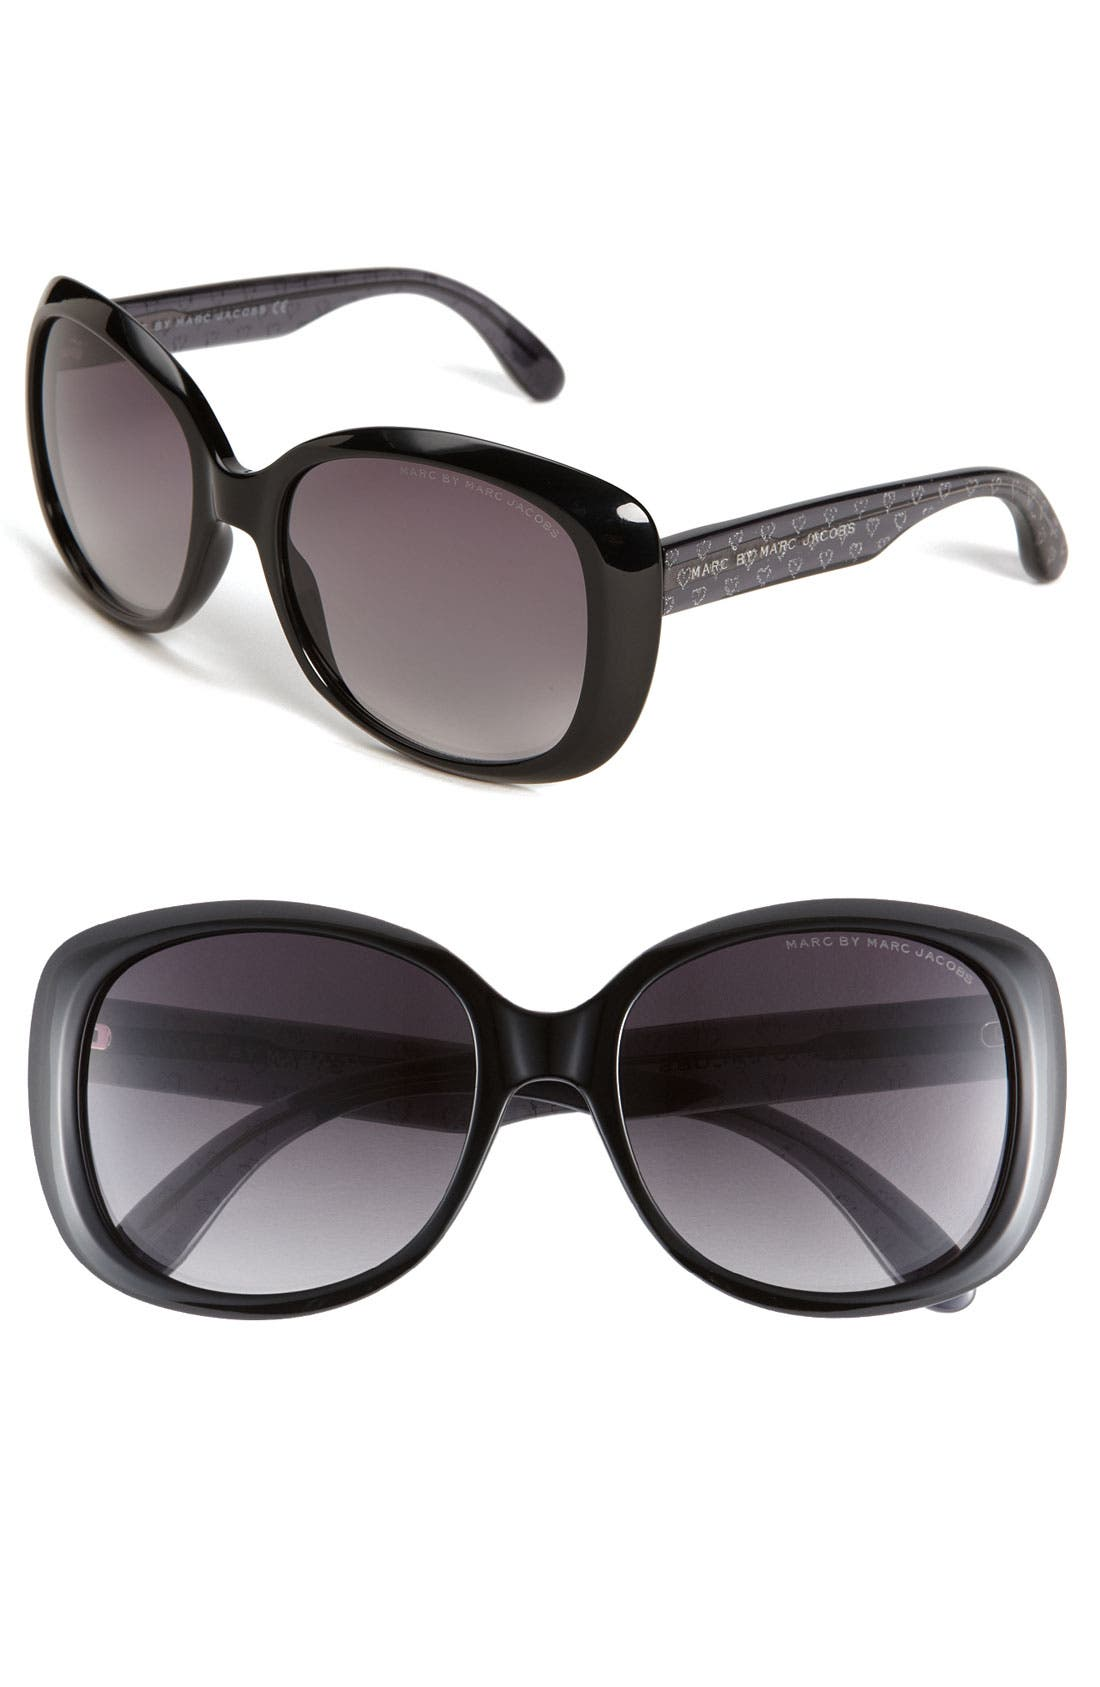 Alternate Image 1 Selected - MARC BY MARC JACOBS Oversized Sunglasses